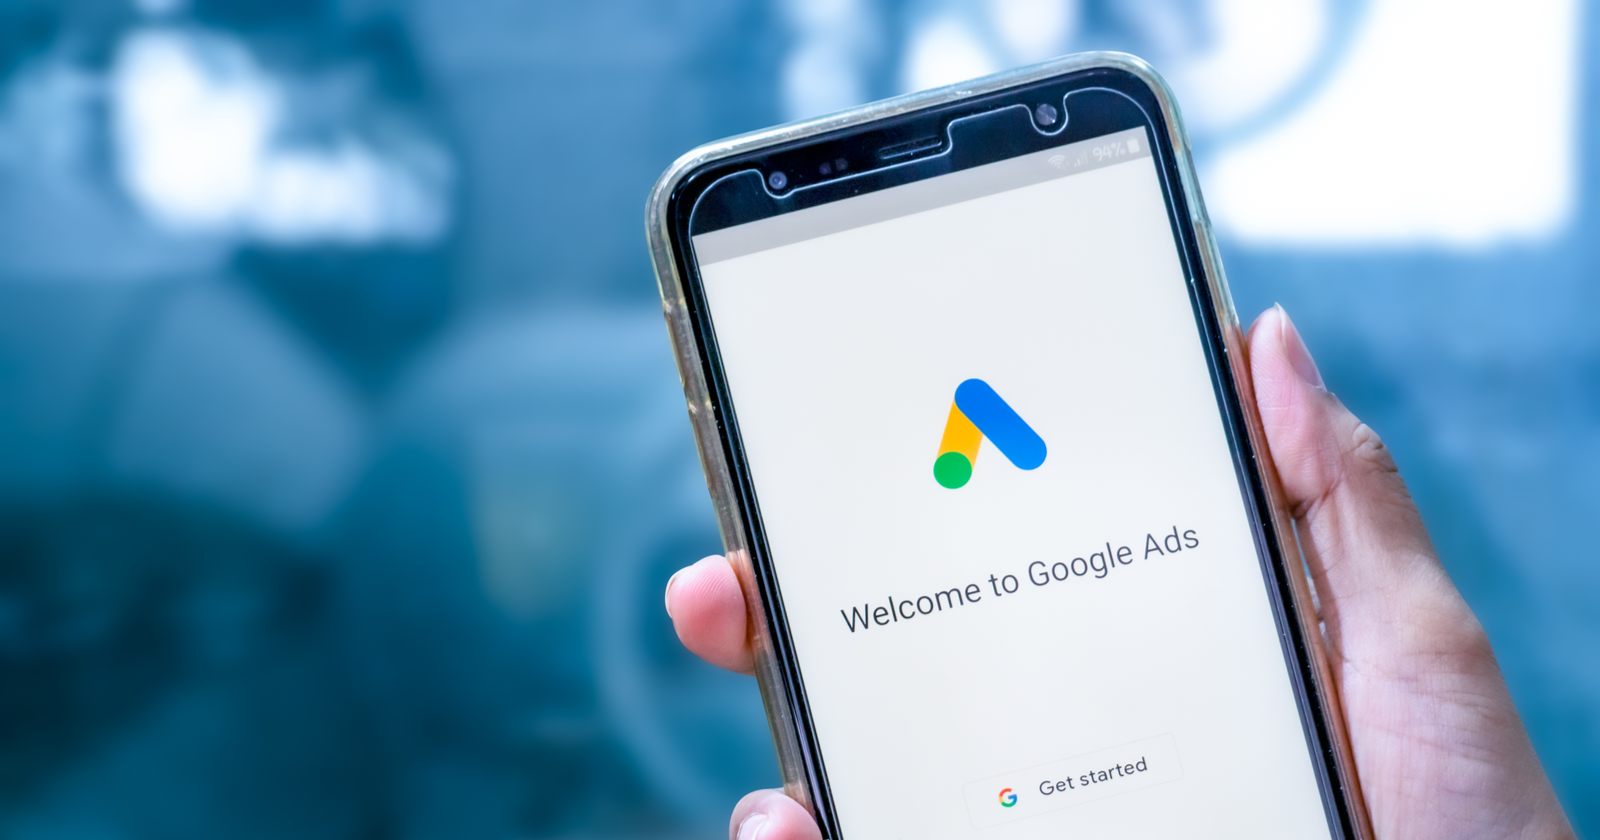 7 google ads shortcuts for better results with less effort 5f0461346a317